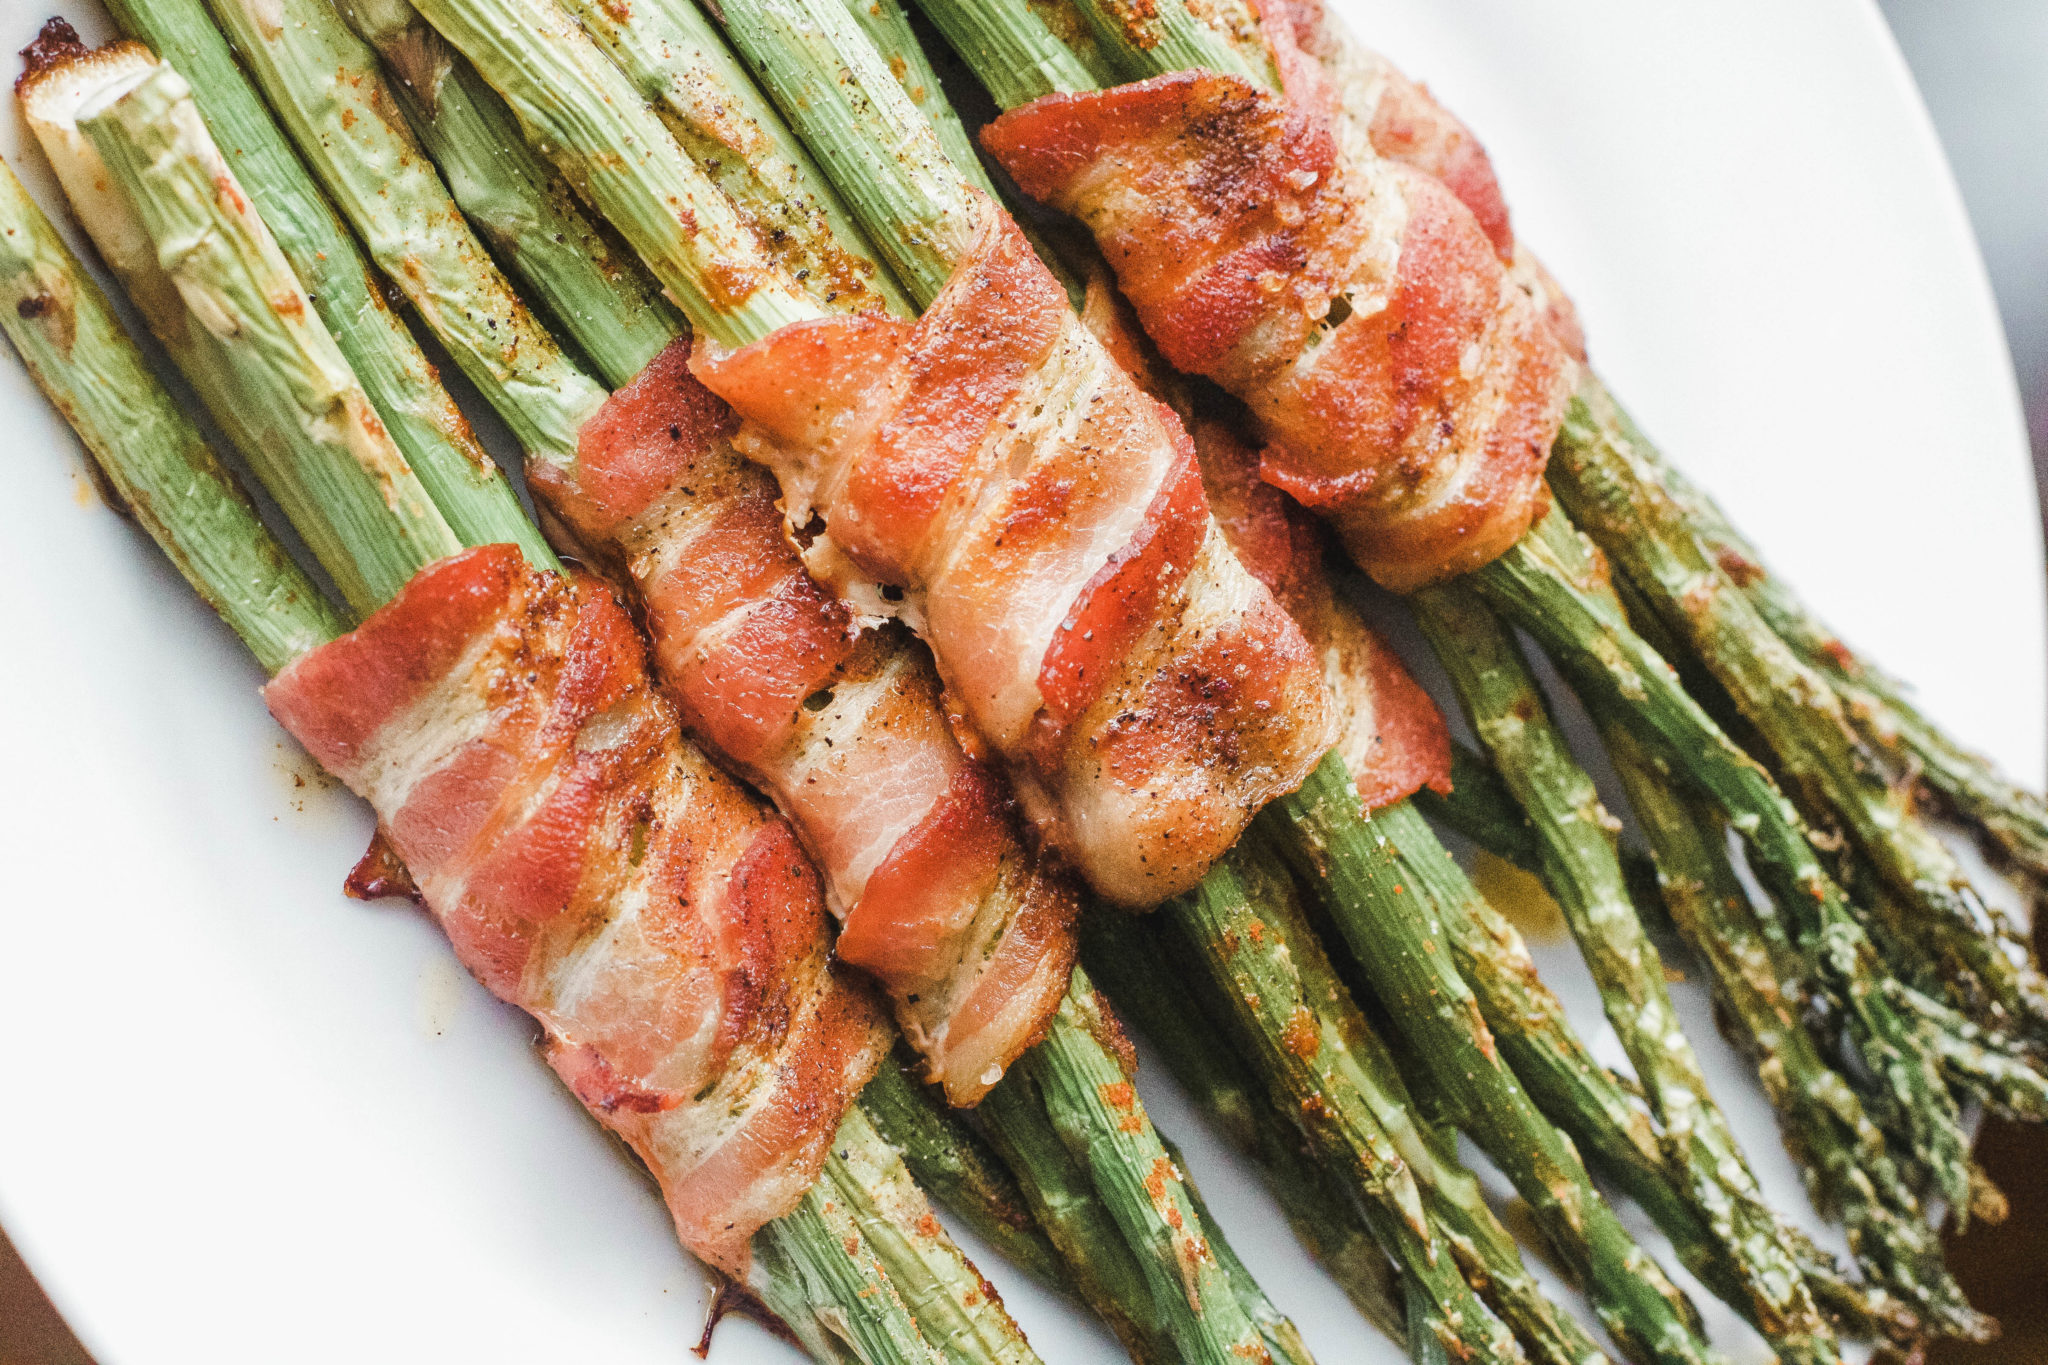 Bacon Wrapped Asparagus is the perfect side dish at dinnertime. Great for lunch or meal prepping as well. They're full of flavour and only 20 minutes to make! Brakfast | Lunch | Dinner | Sides | Side Dish | Uncured Bacon | Organic | NON GMO | Paleo | Whole 30 | Gluten-free | GF | Easy | Quick | Vegetables | Veggies | Keto | Ketogenic Diet | Weight Loss | Lose Weight | Low Carb | Protein |